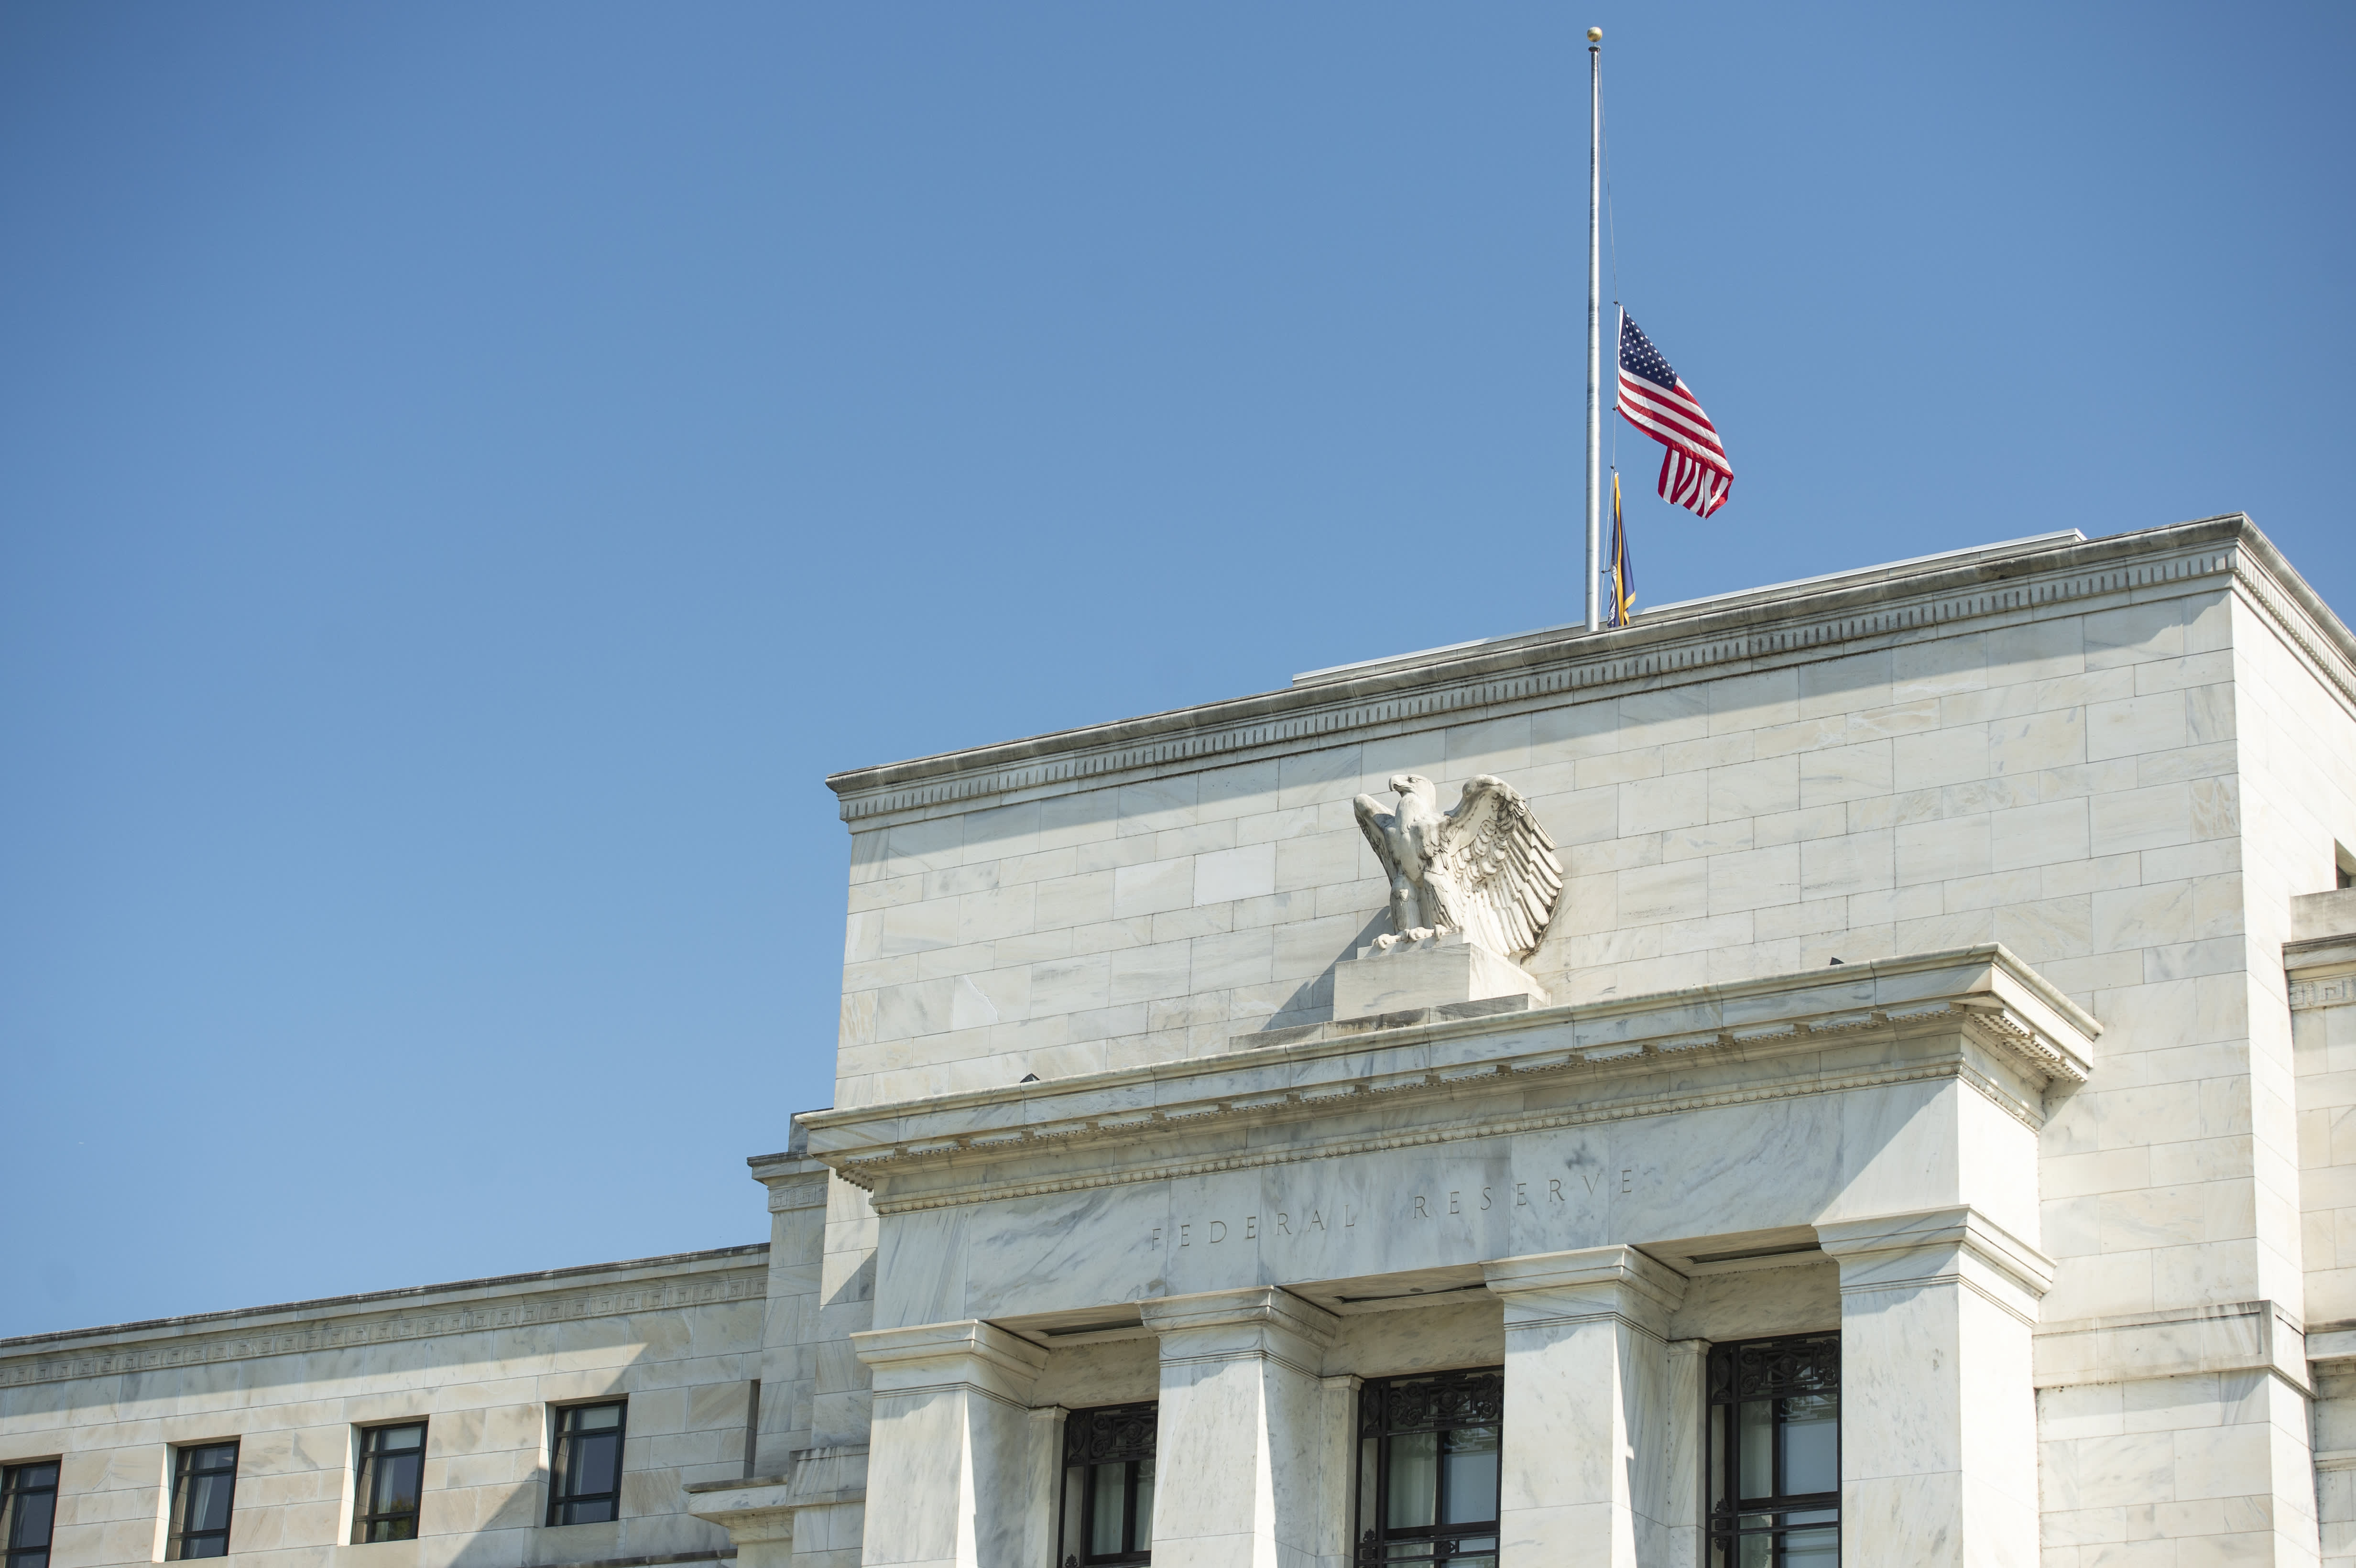 The Fed forecasts no further rate cuts for 2019 and 2020